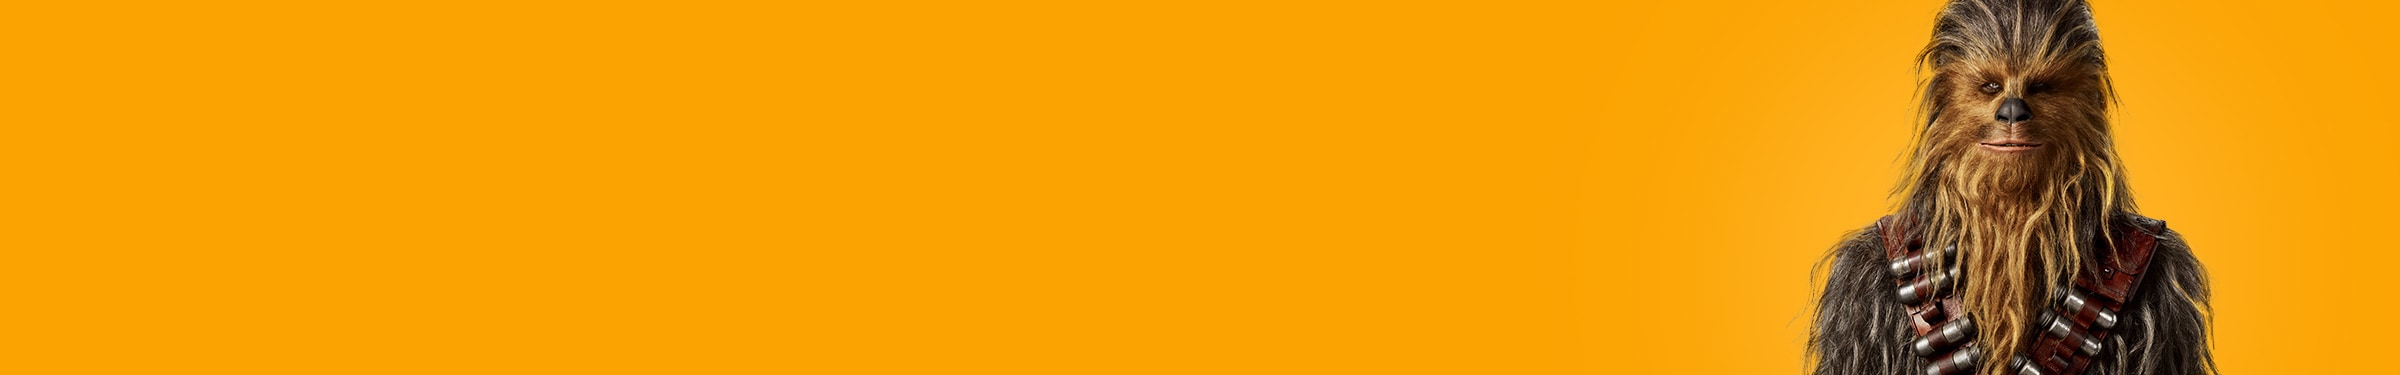 Shop Star Wars - Products We Love - More Star Wars Products for Fans